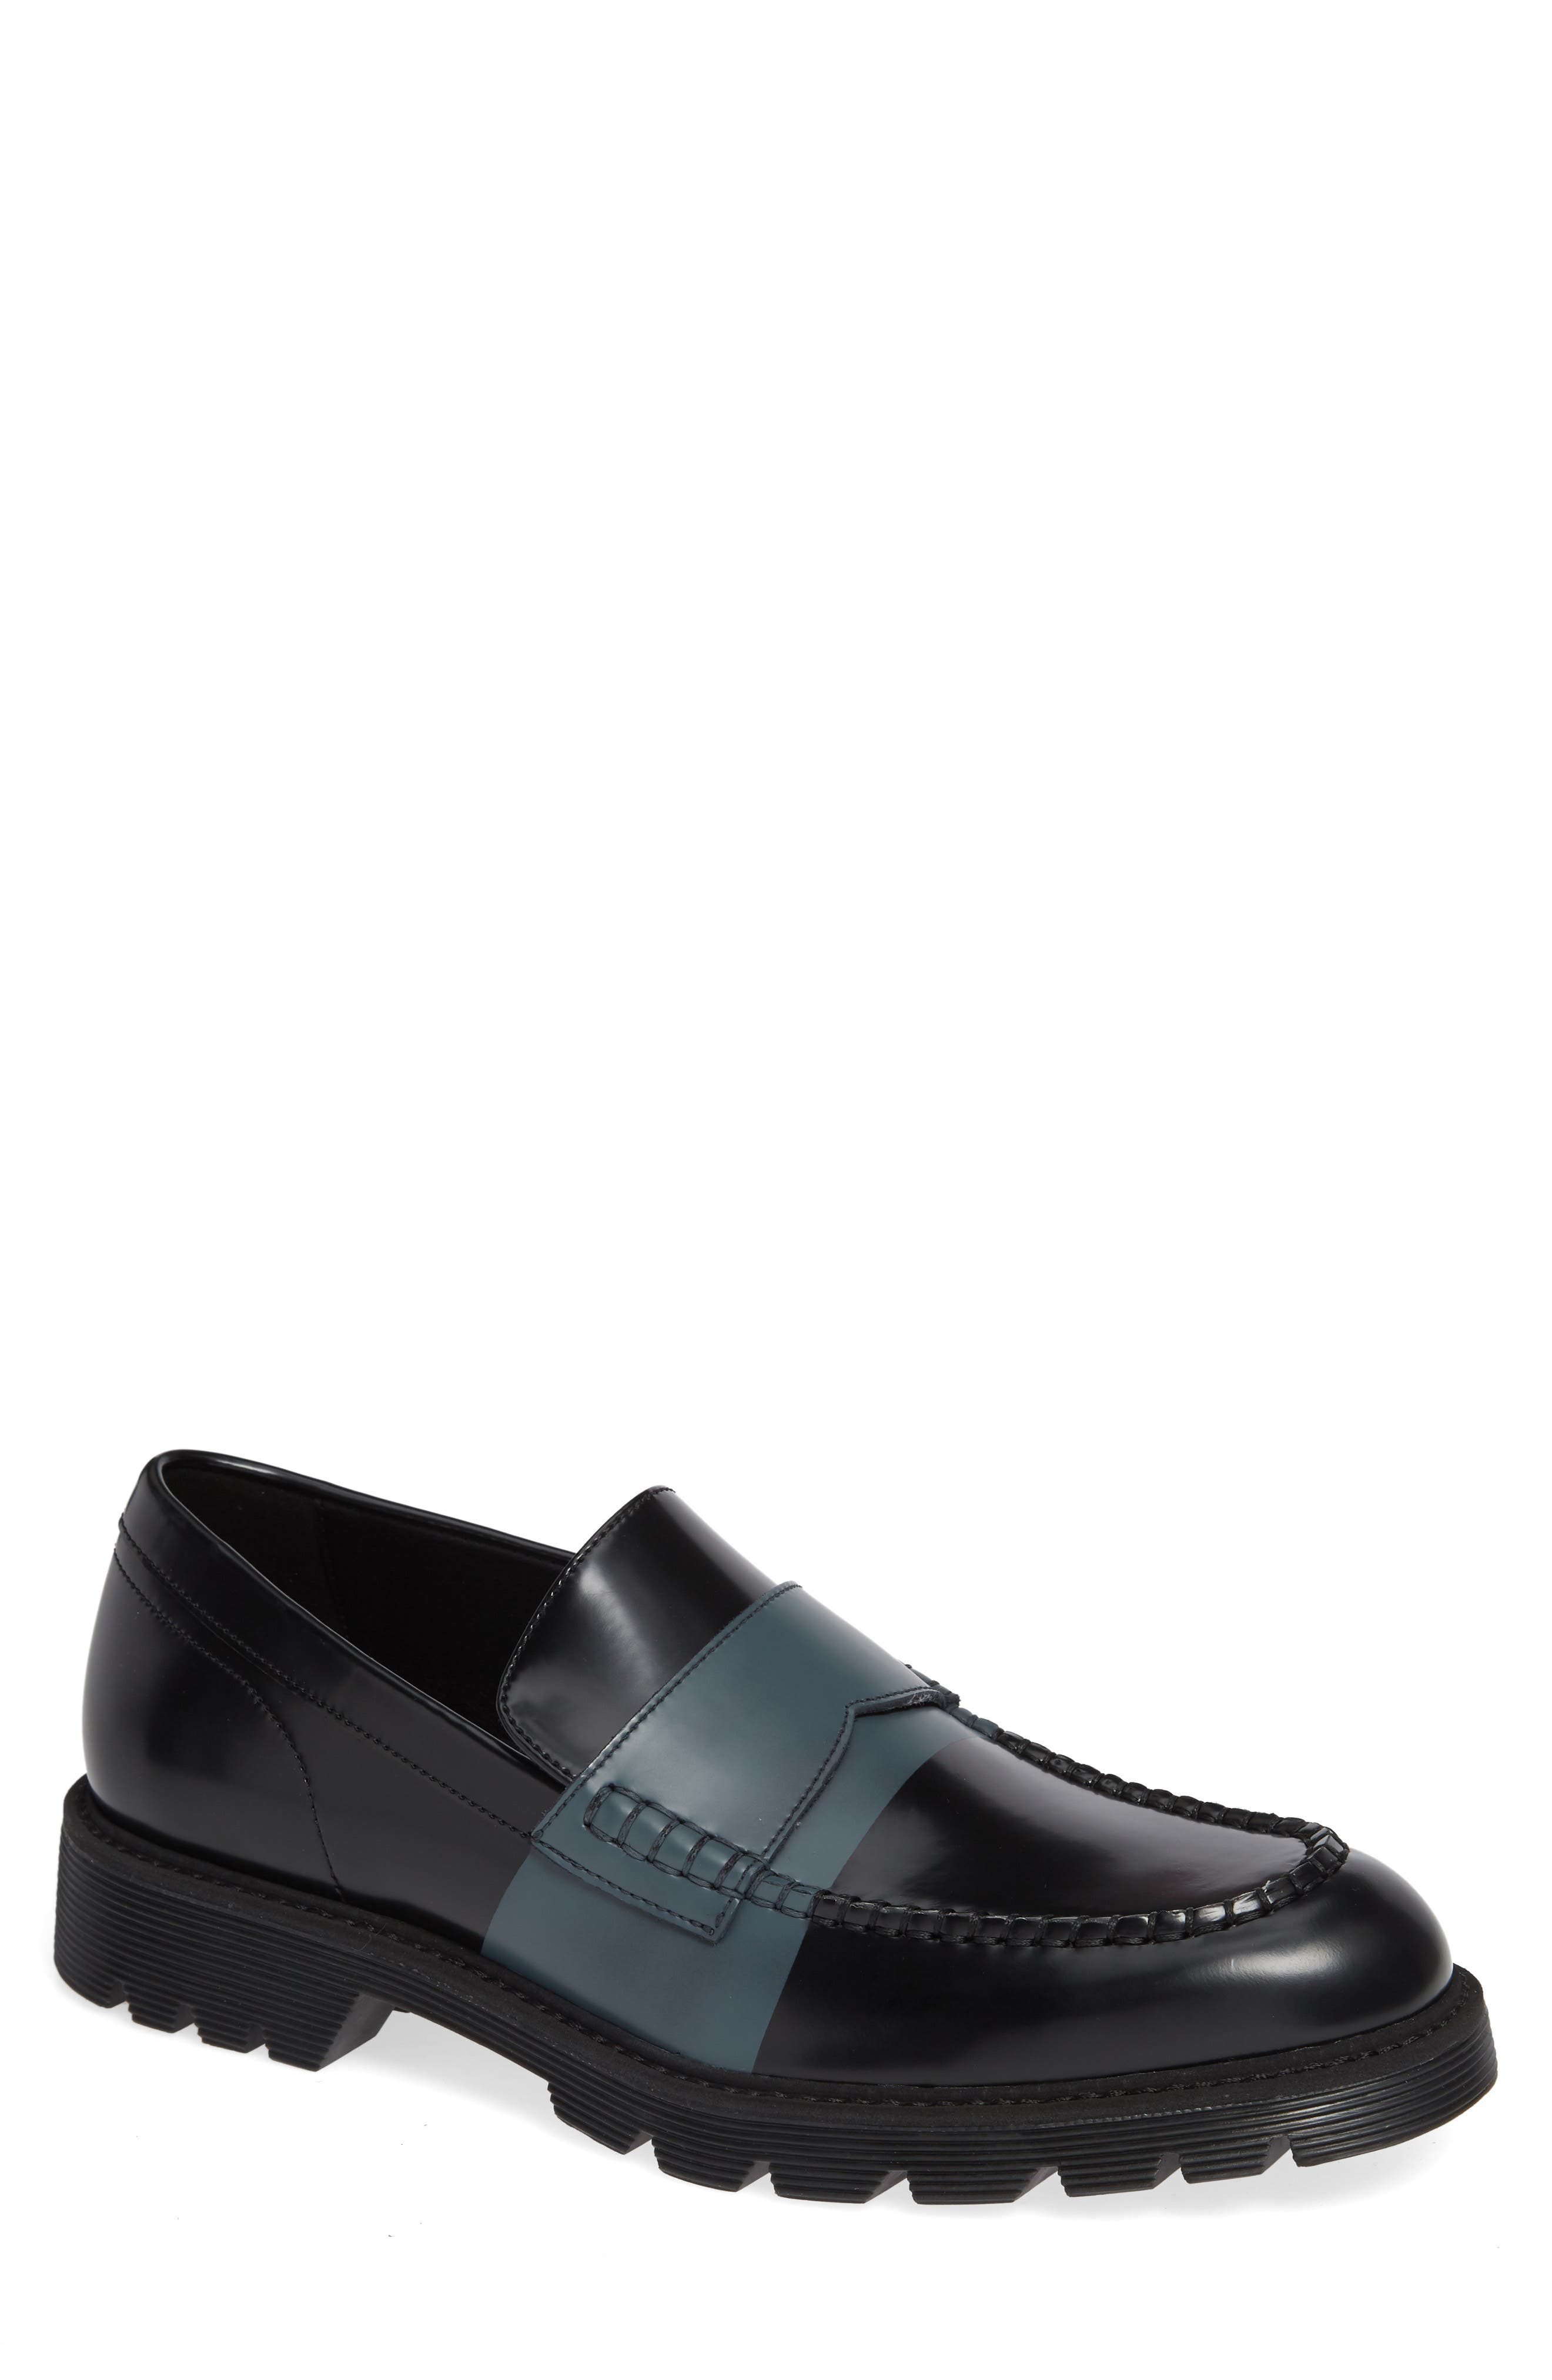 Florentino Penny Loafer,                         Main,                         color, BLACK LEATHER